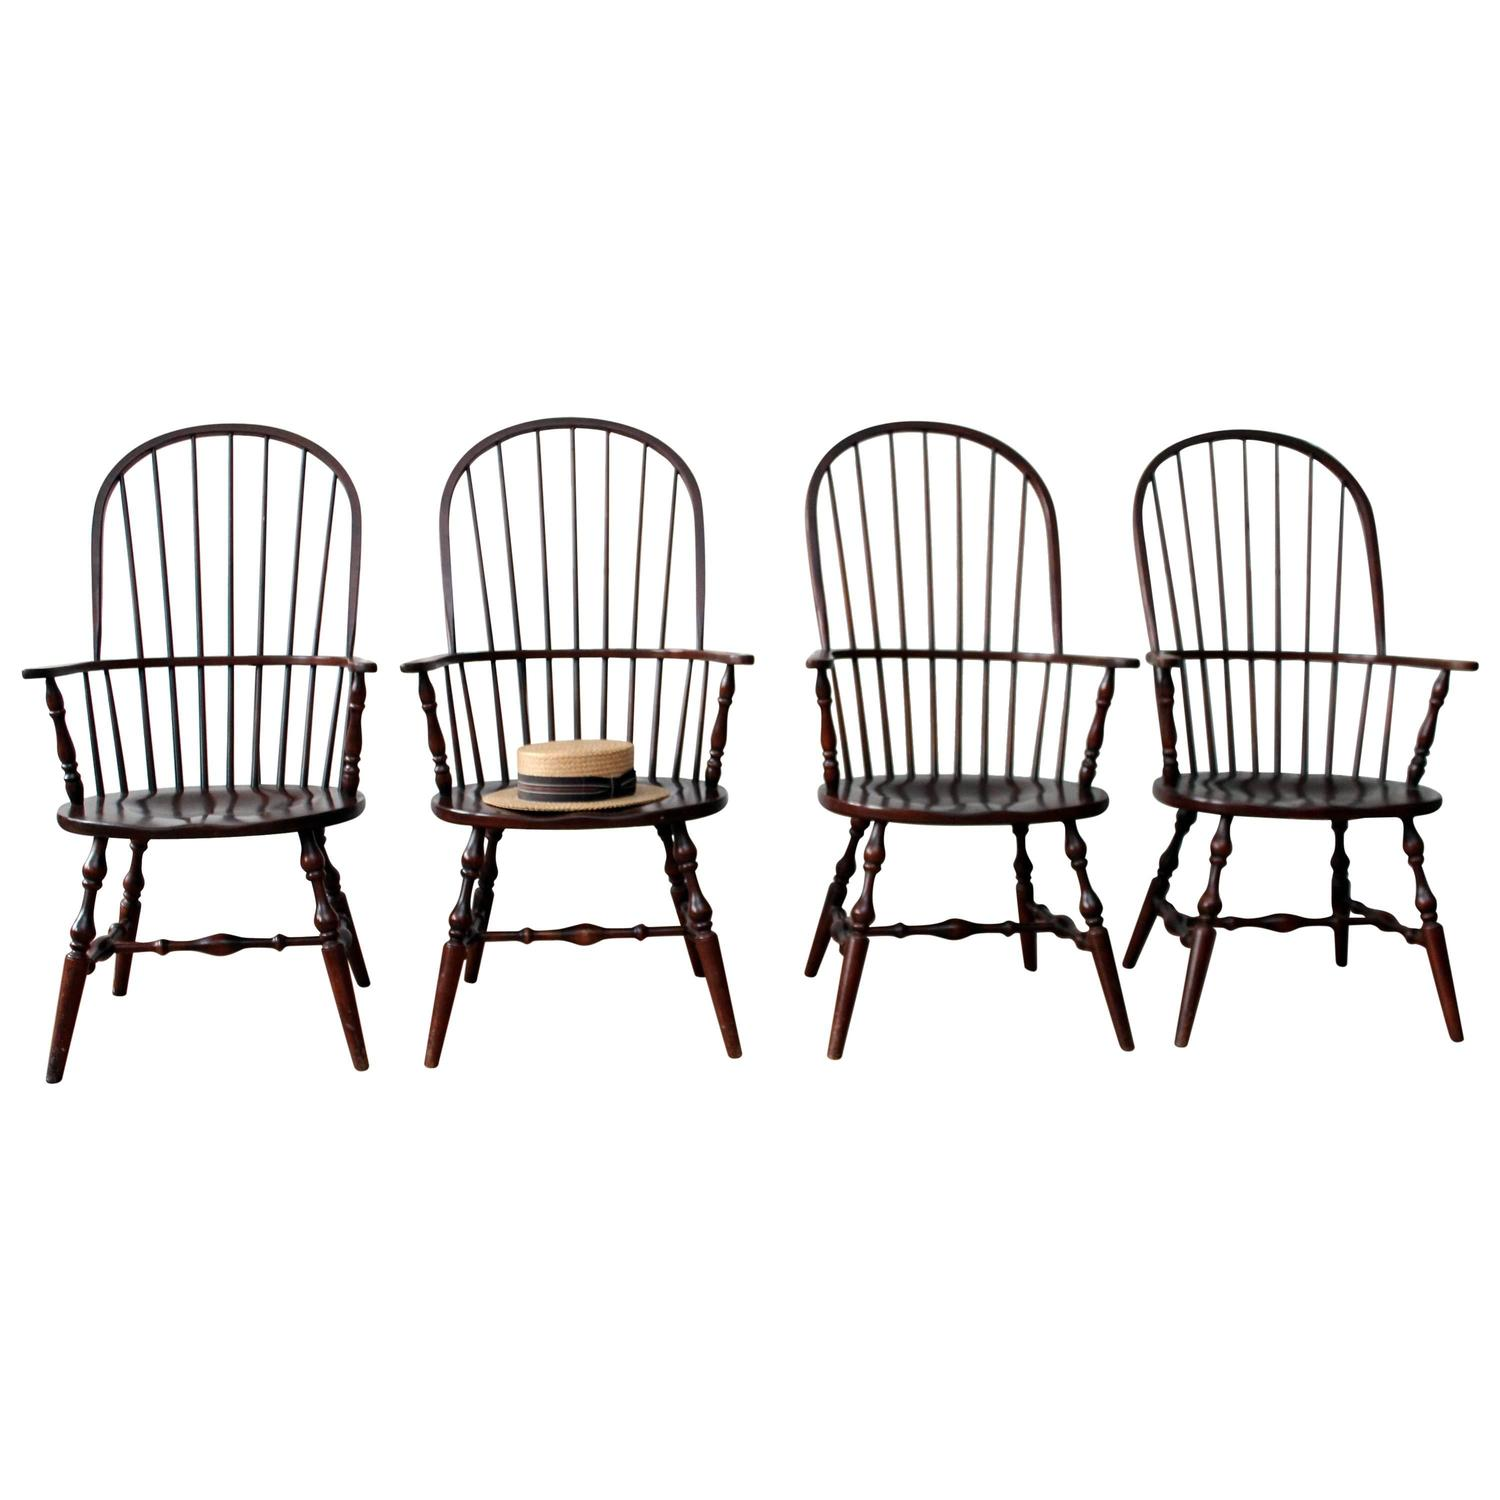 Habersham Sack Back Windsor Chairs at 1stdibs